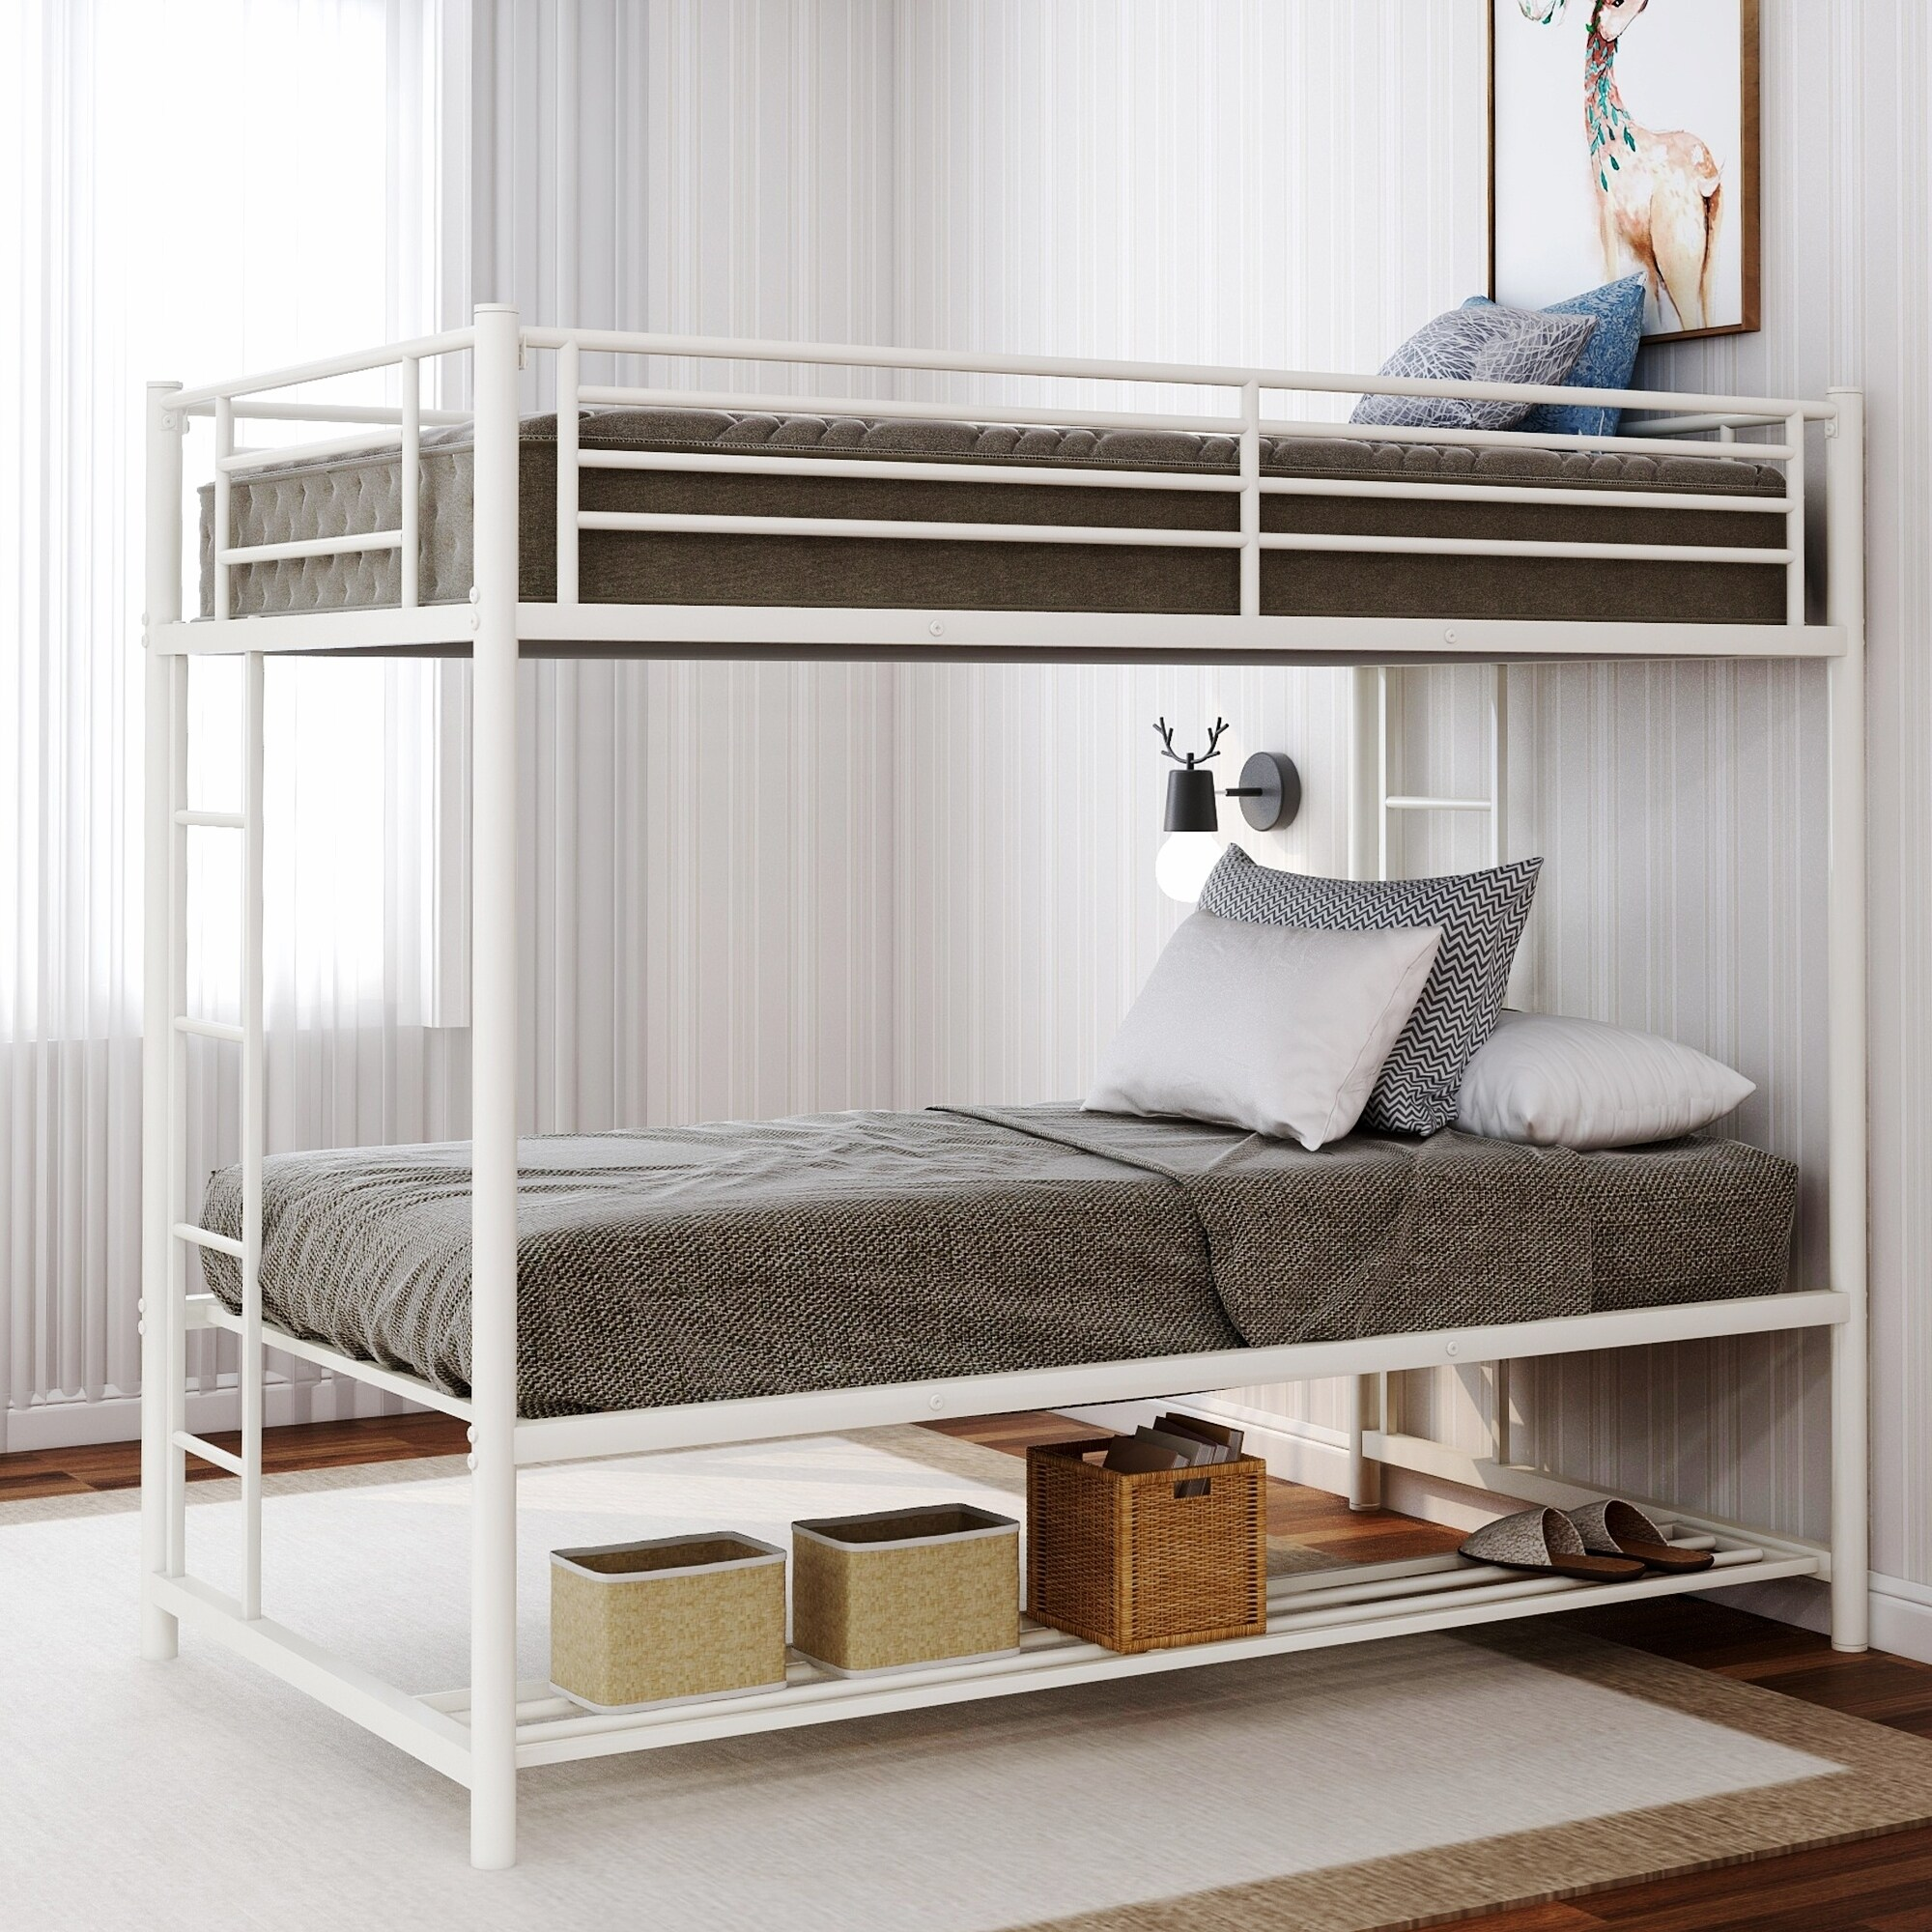 Shop Black Friday Deals On Harper Bright Designs Twin Over Twin Bunk Bed With Storage Overstock 30355492